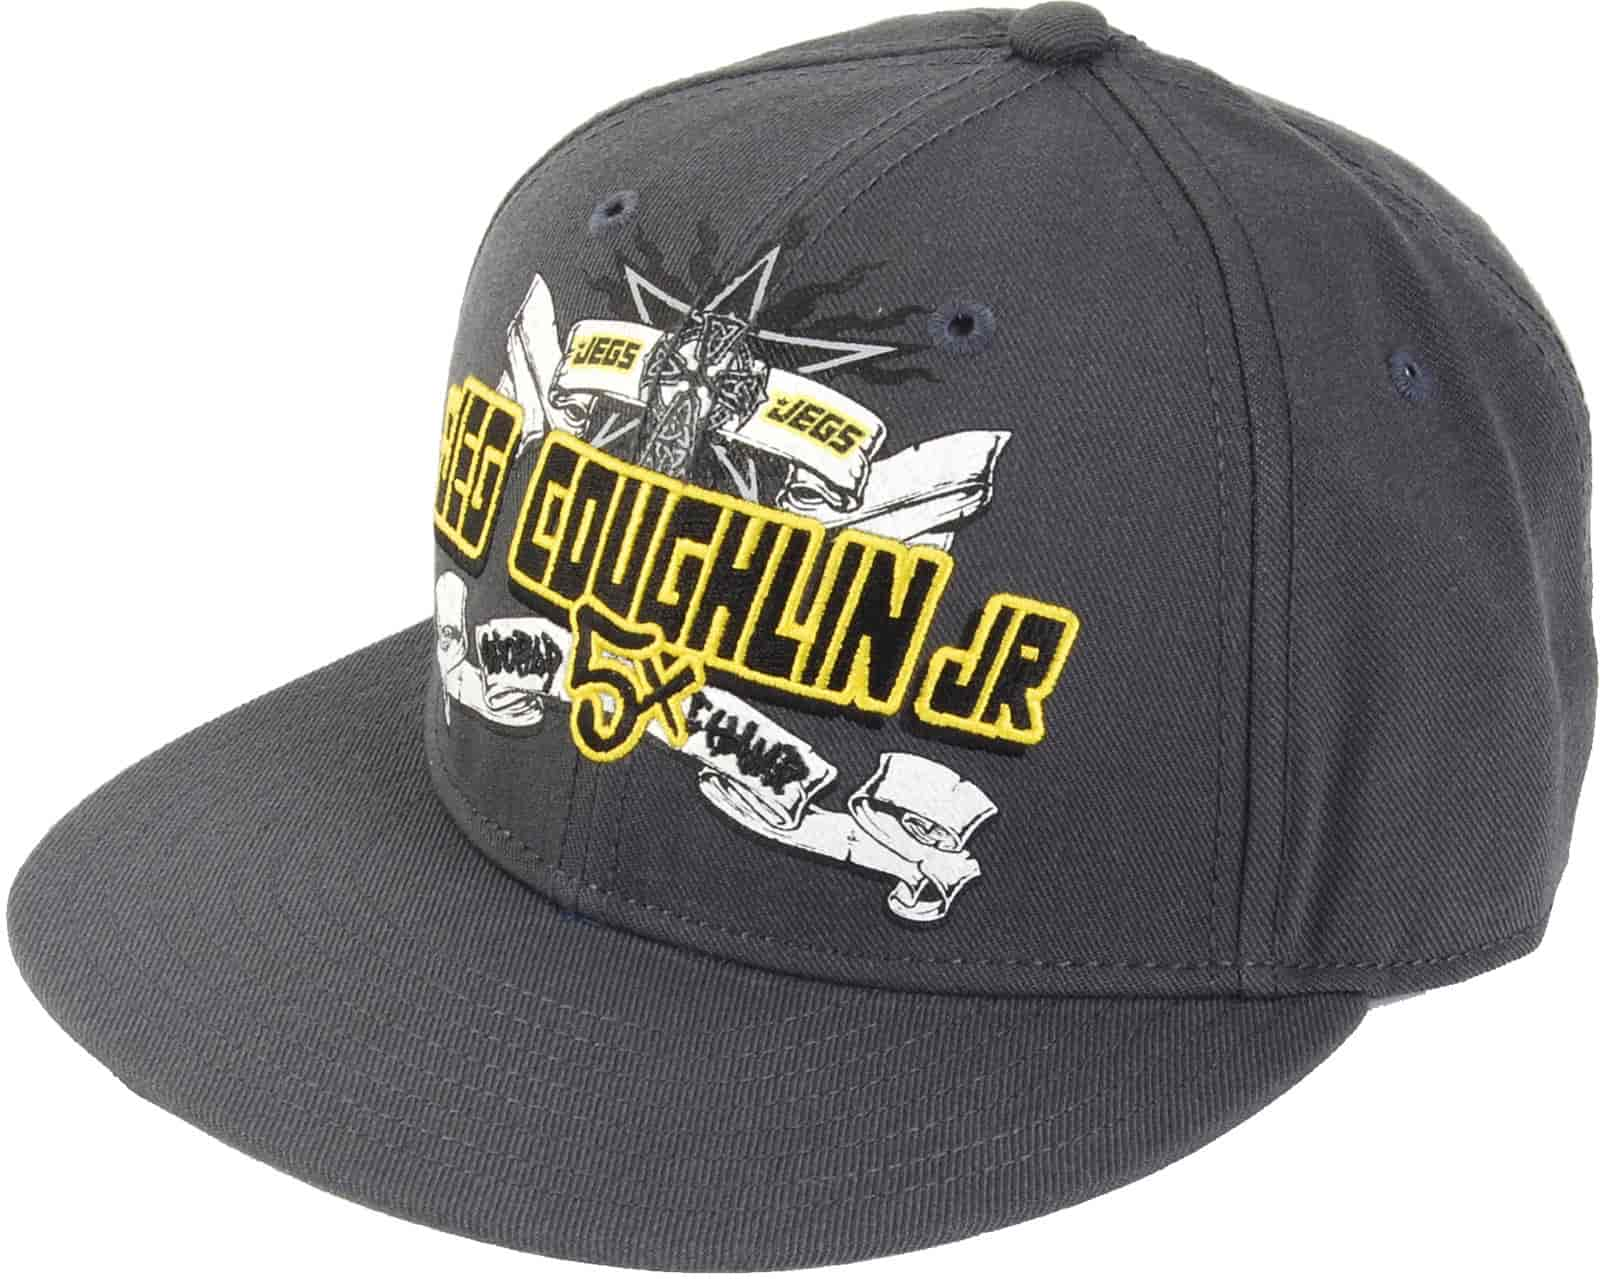 JEGS 02100 - JEGS Jeg Jr. 5X Champ 50th Anniversary Hat